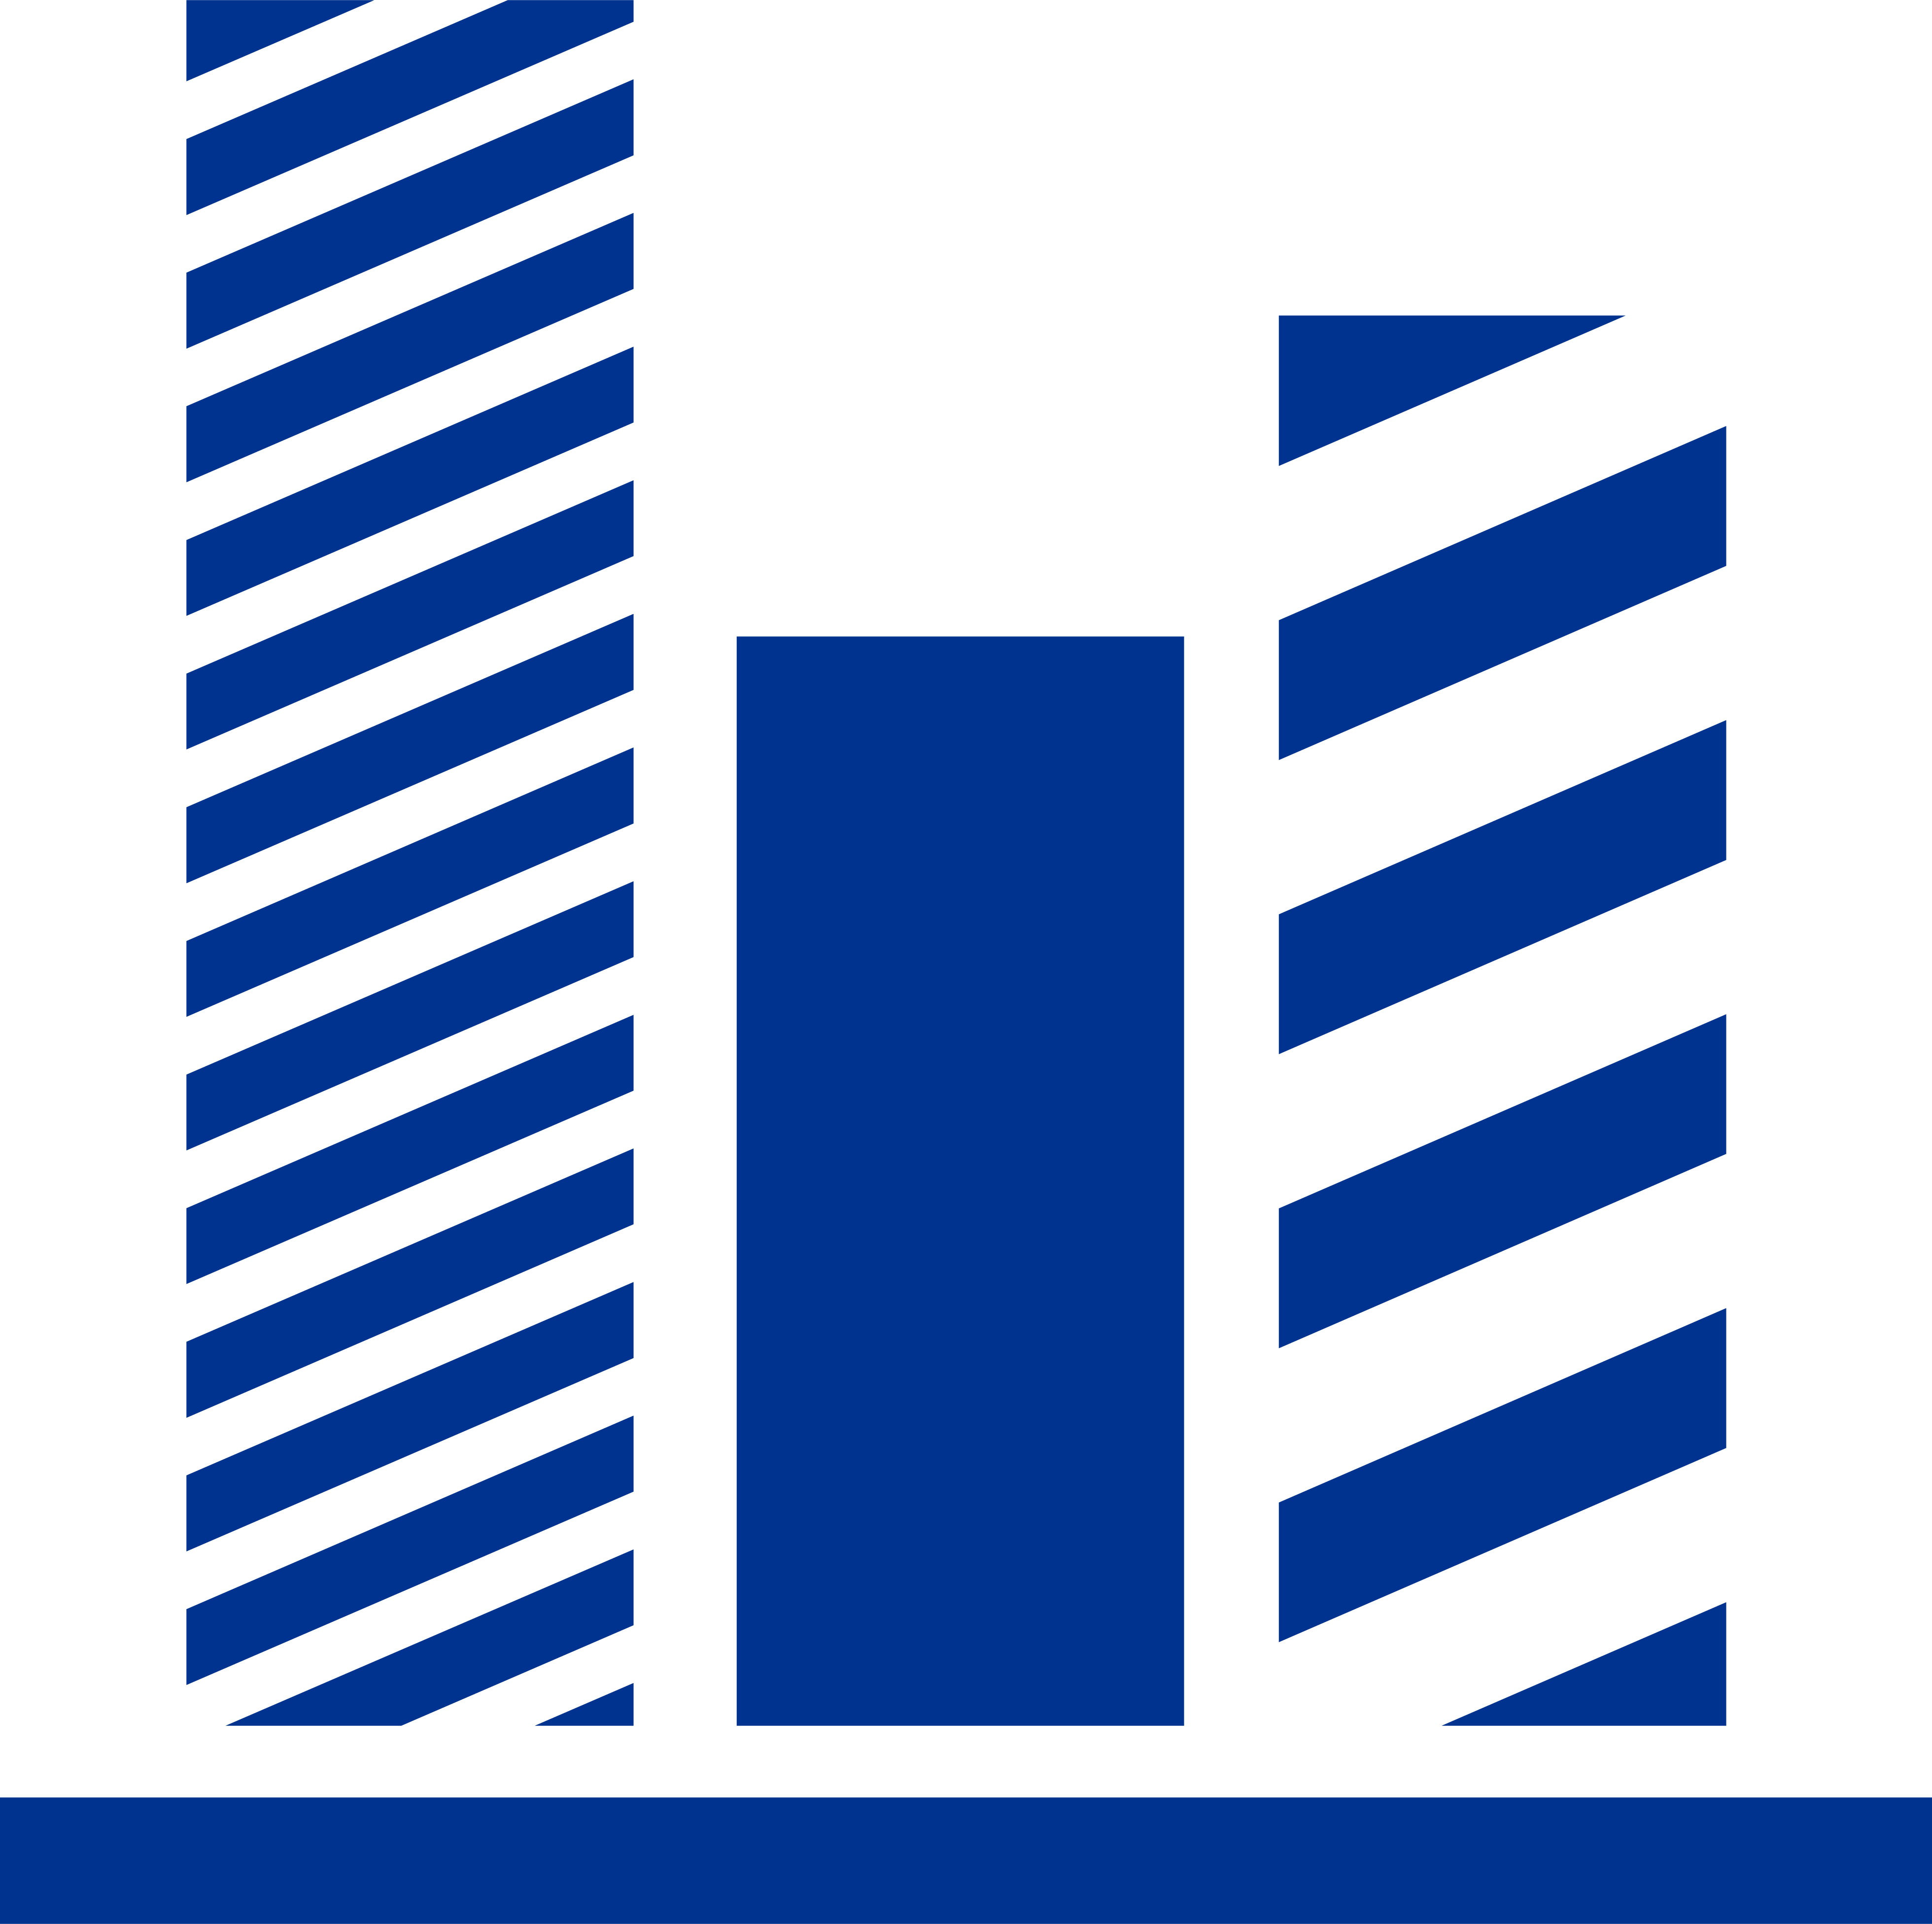 blue icon of a vertical bar chart